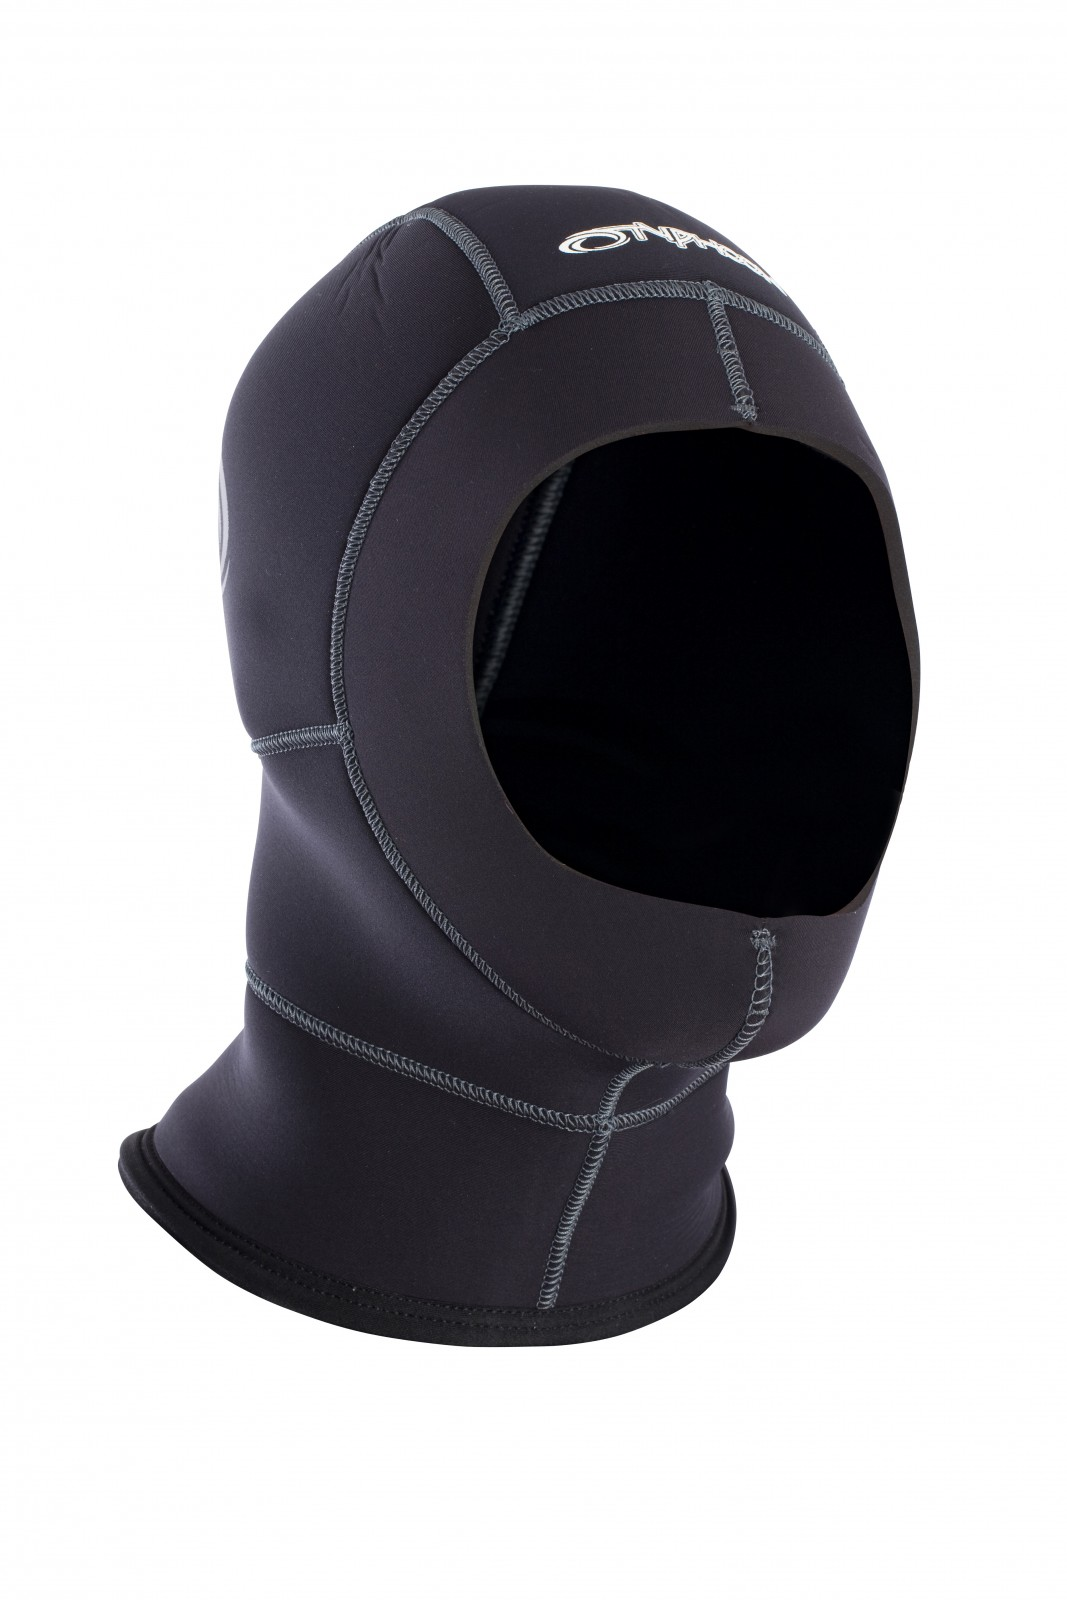 Typhoon Raptor 3 Hood M